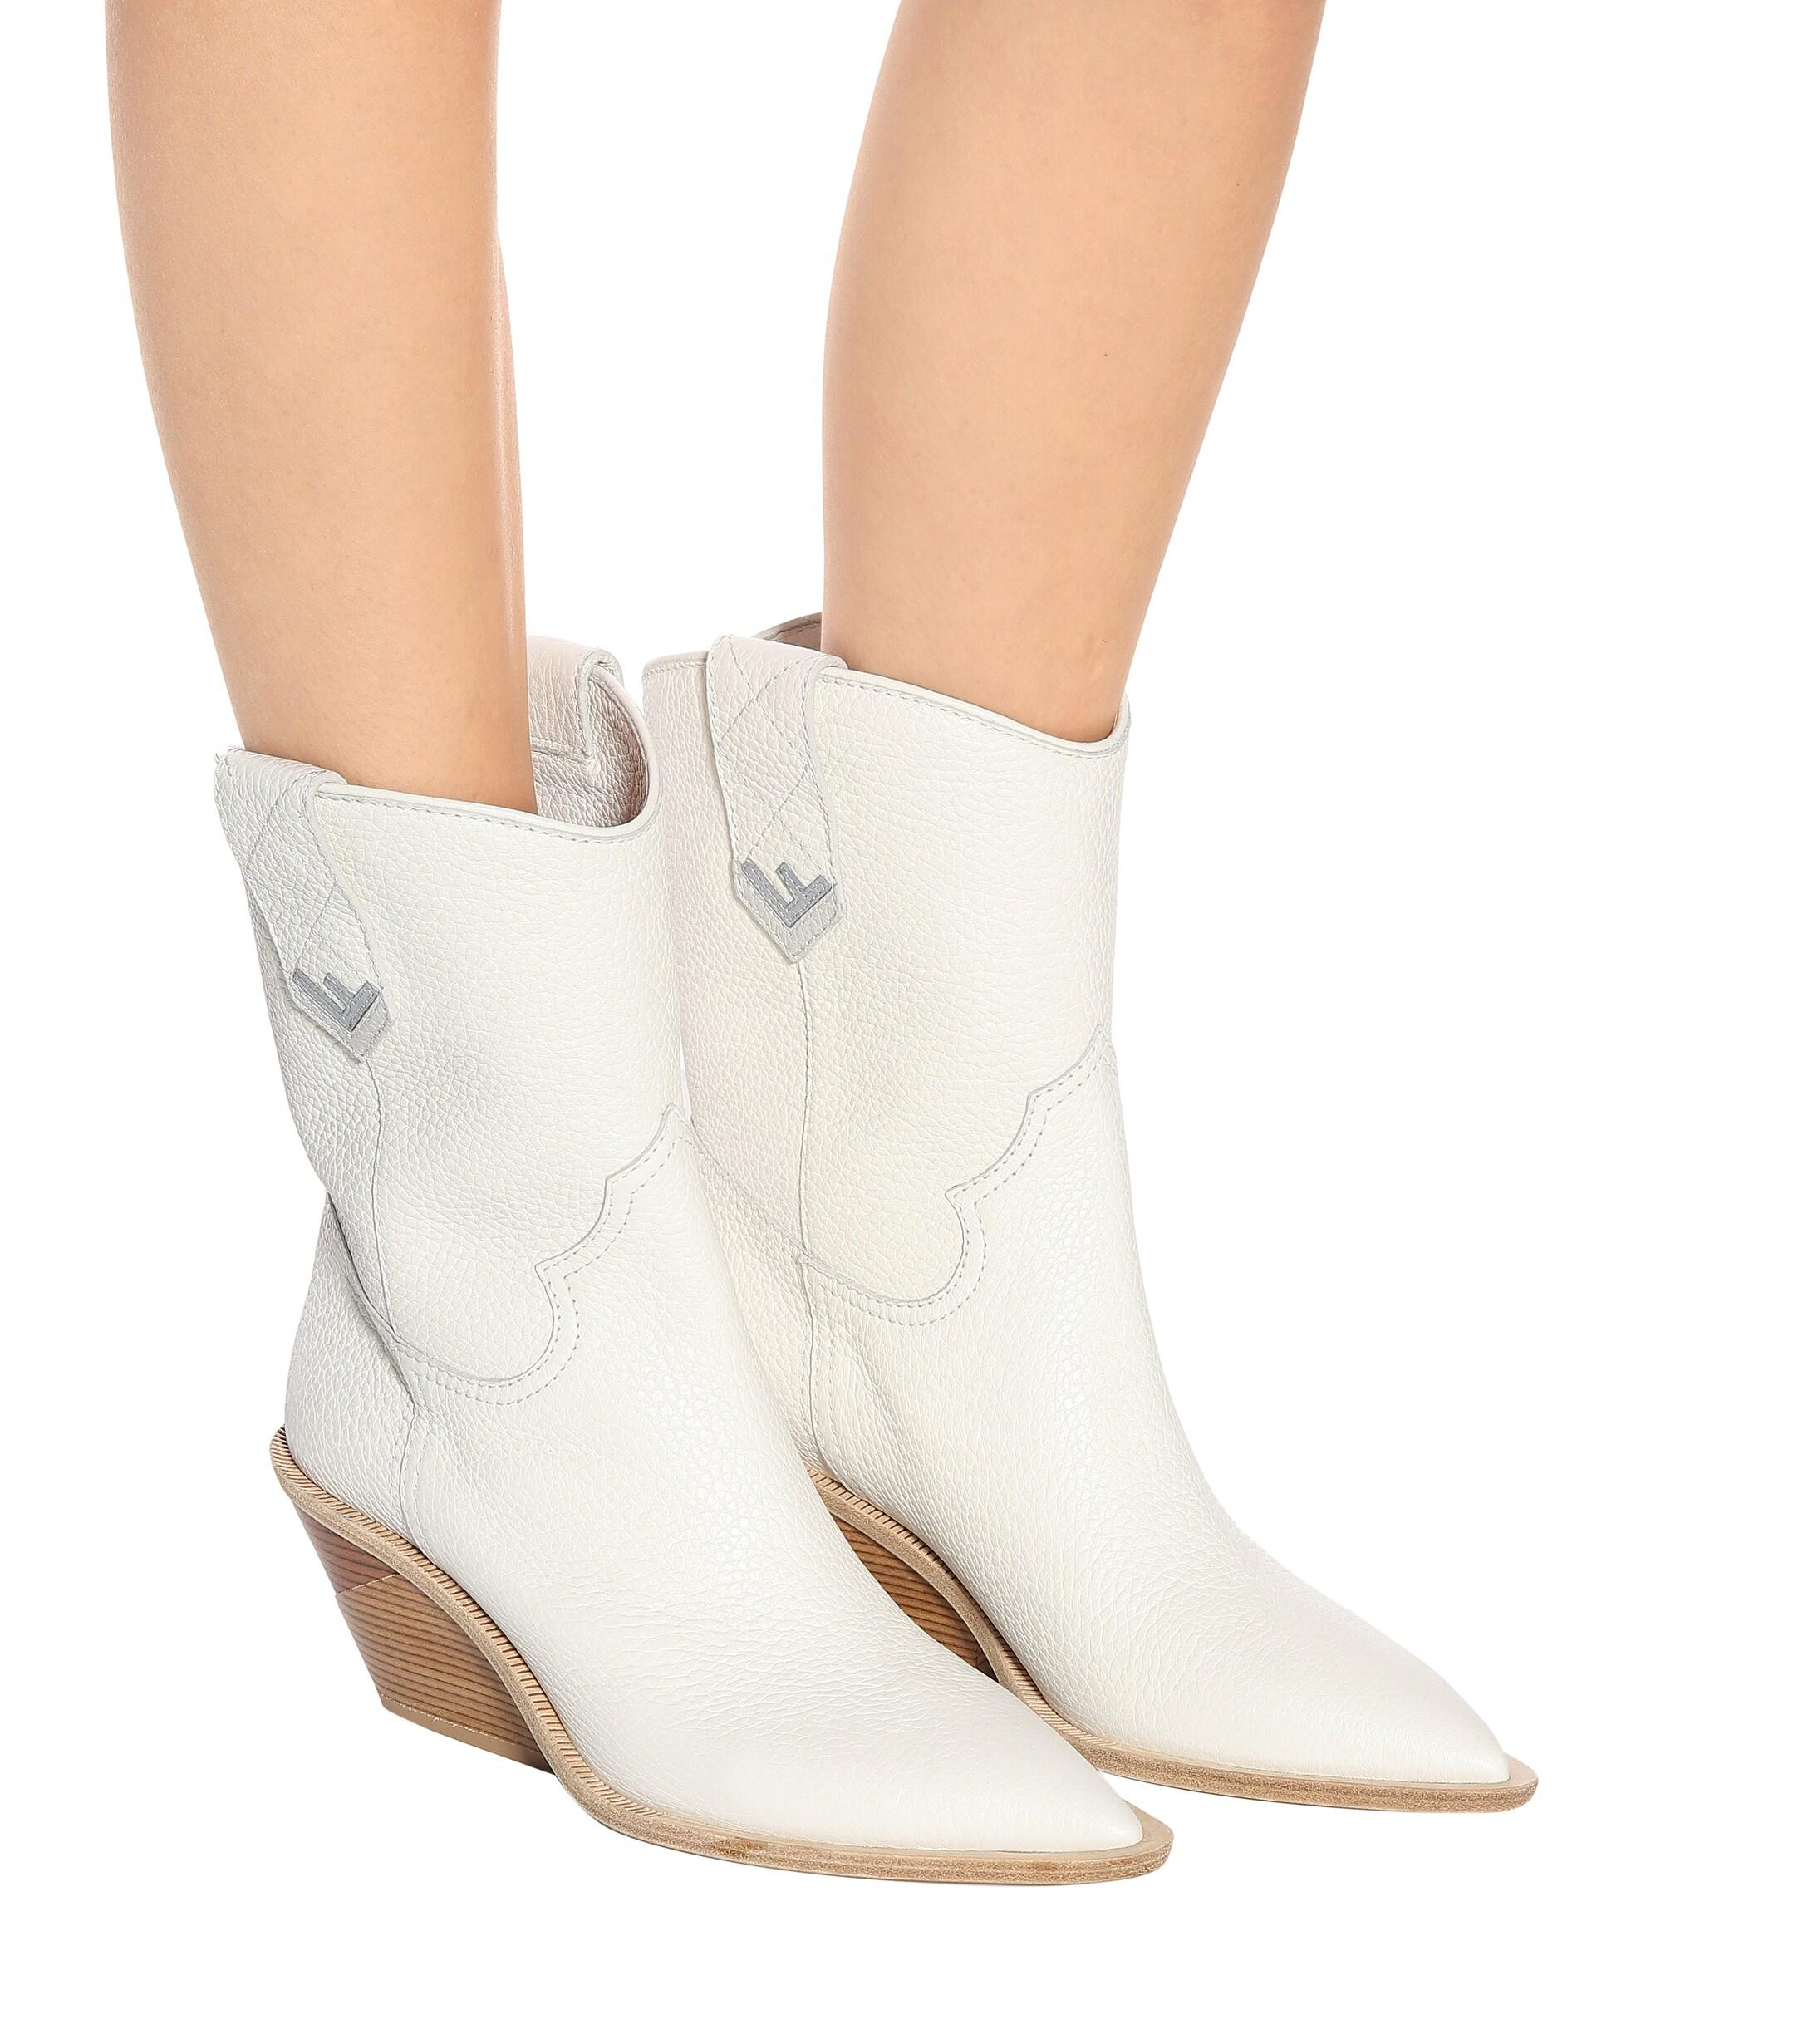 Fendi Leather Cowboy Boots in White - Lyst